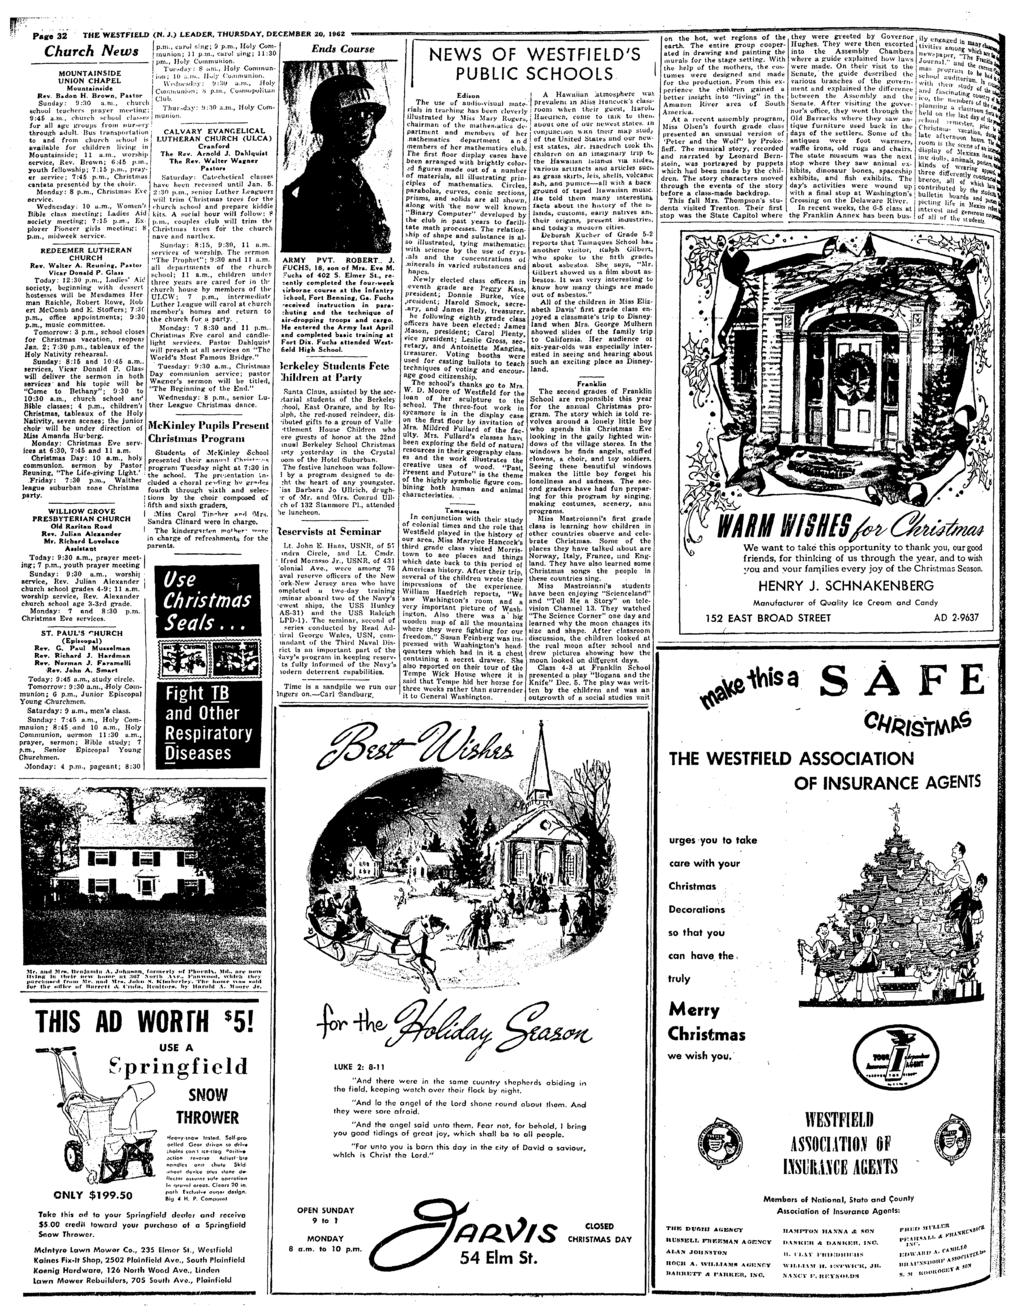 f- Page 3 2 THE WESTFf ELD (N. J.) LEADER, THURSDAY, DECEMBER 20, 1962 Church News MOUNTAINSIDE UNION CHAPEL Mountansde Rev. B.don H. Brown, Pator Sunday: <J :'M a.m.